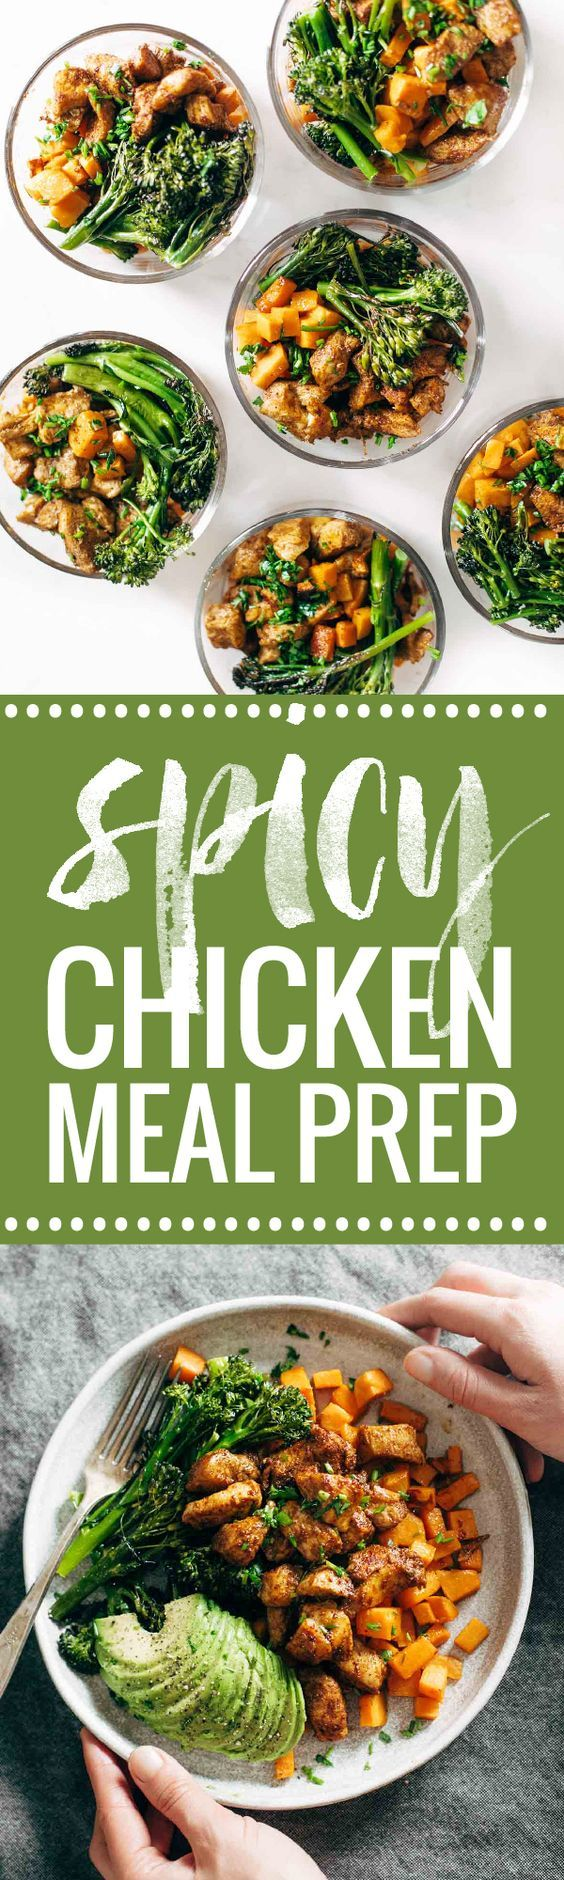 Spicy Chicken Sweet Potato Meal Prep Magic Bowls